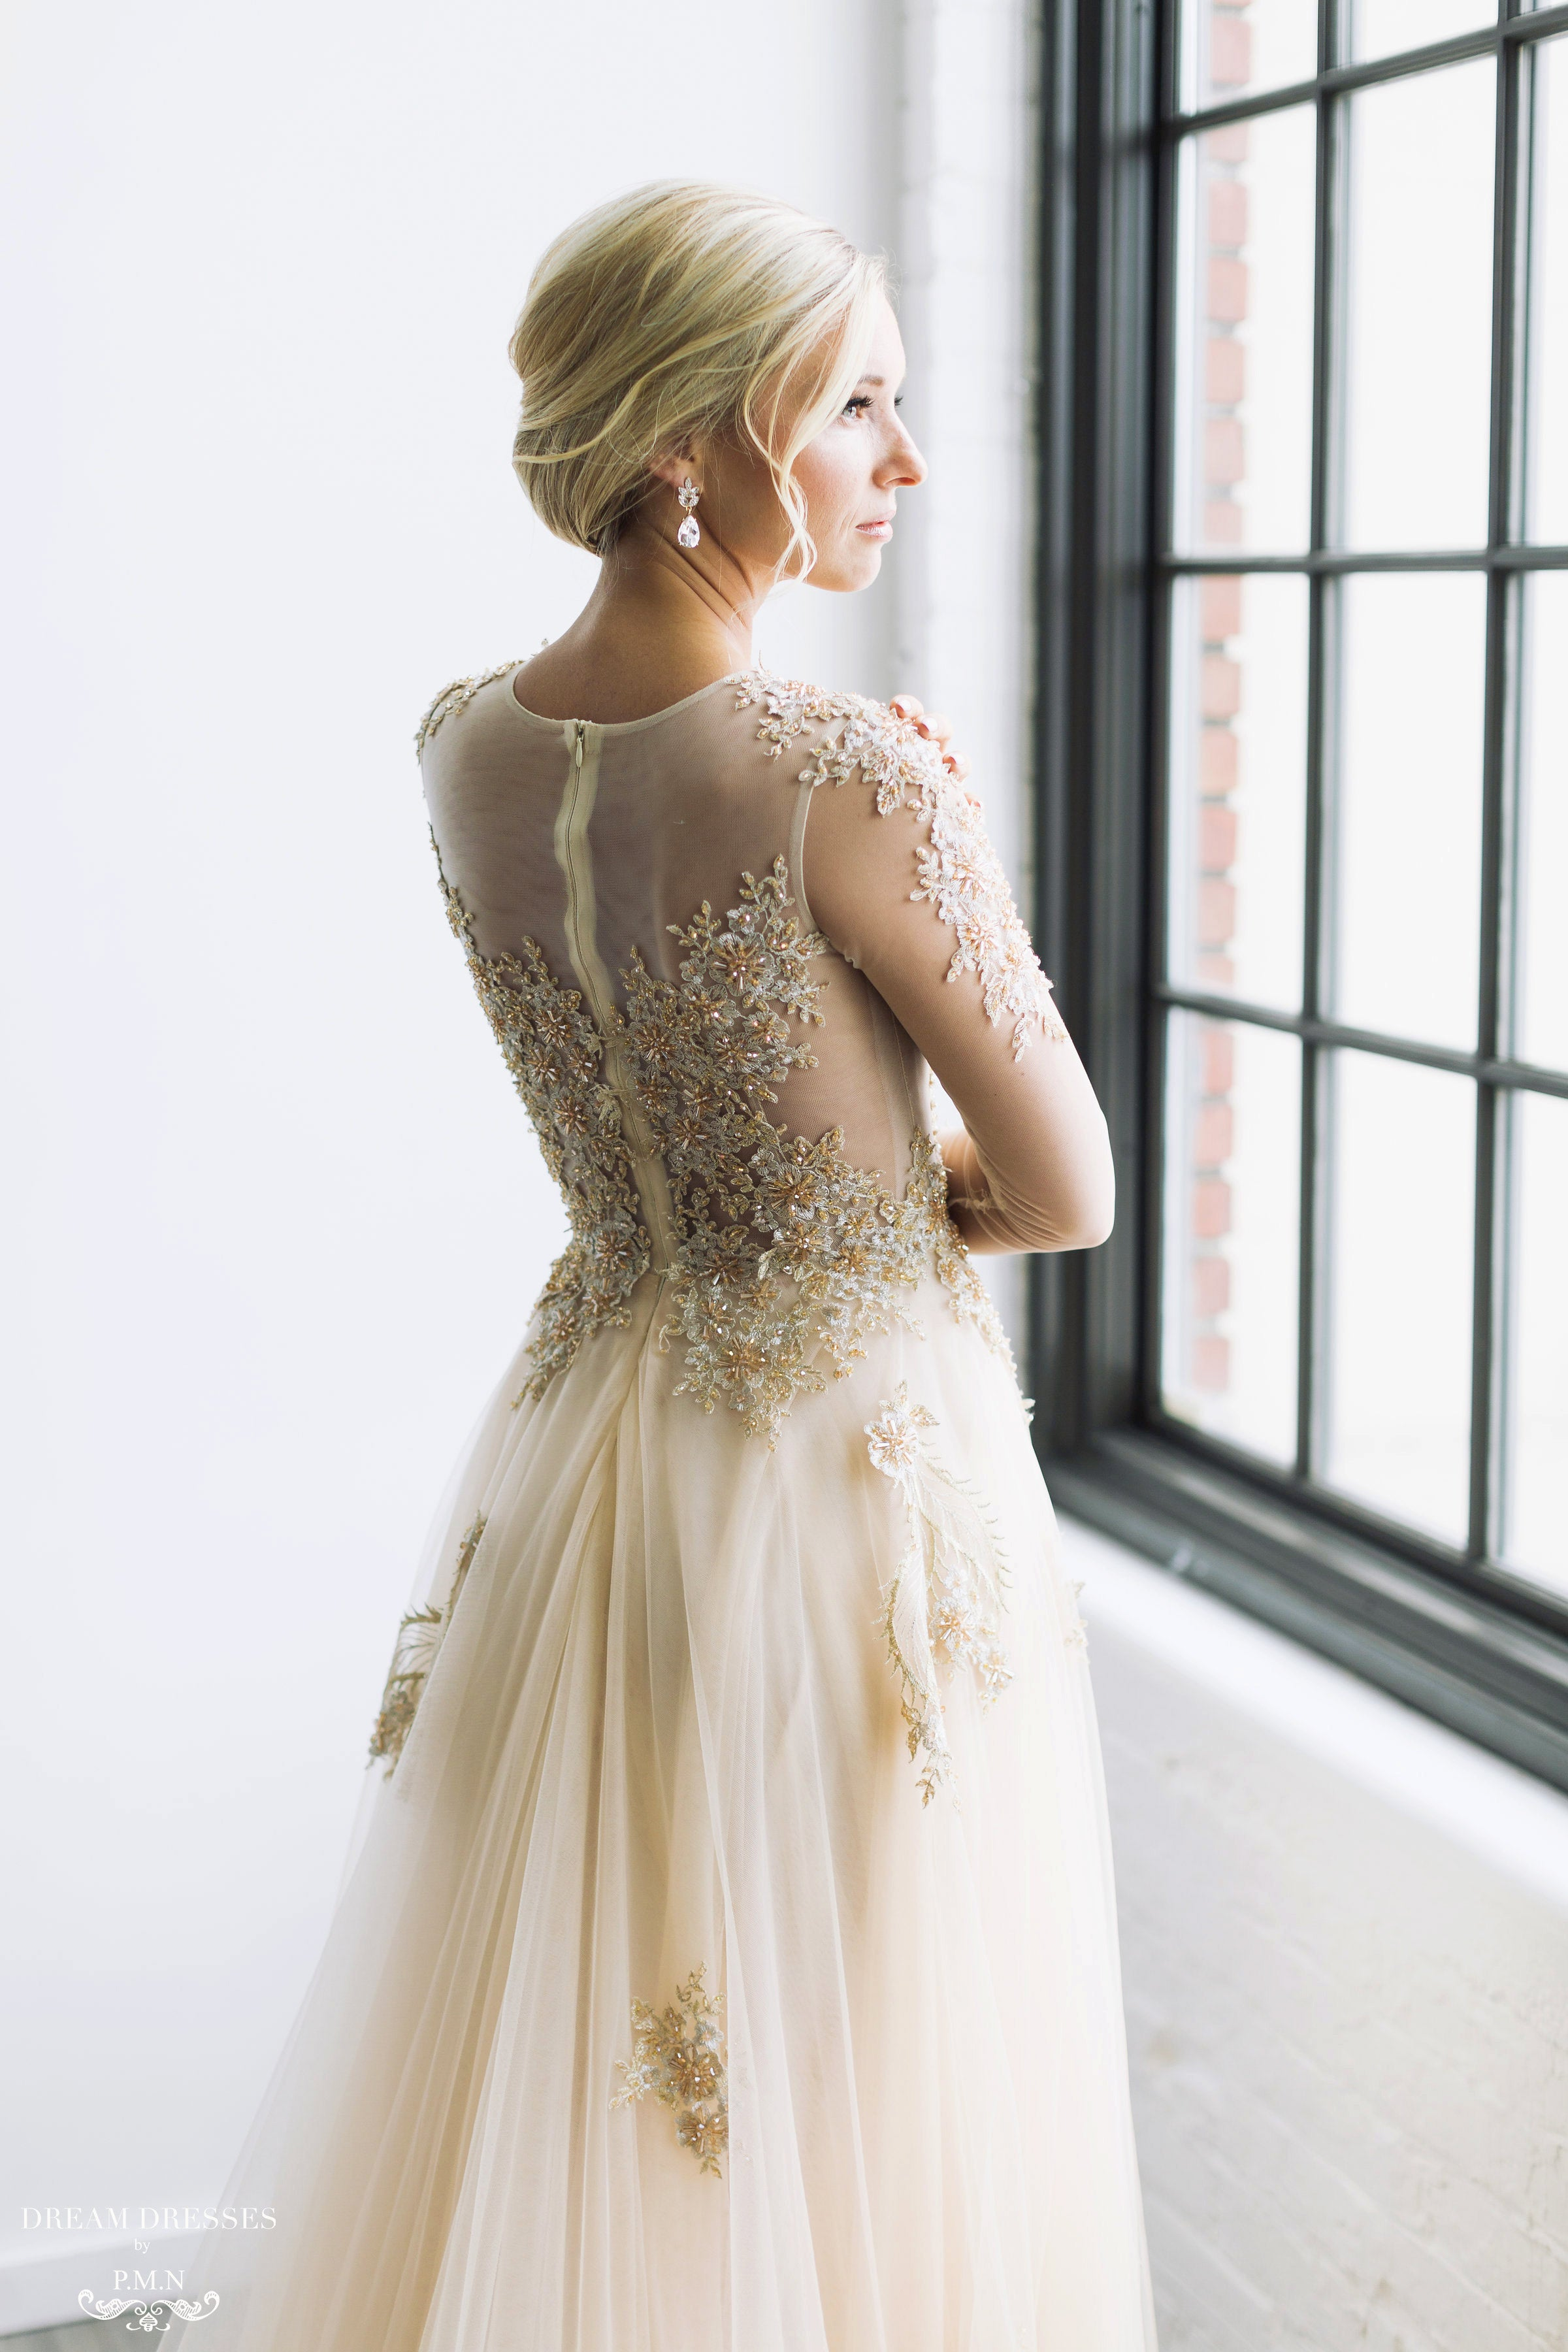 Champagne/Gold Long Sleeve Princess A-Line Gown (# ARIEL)